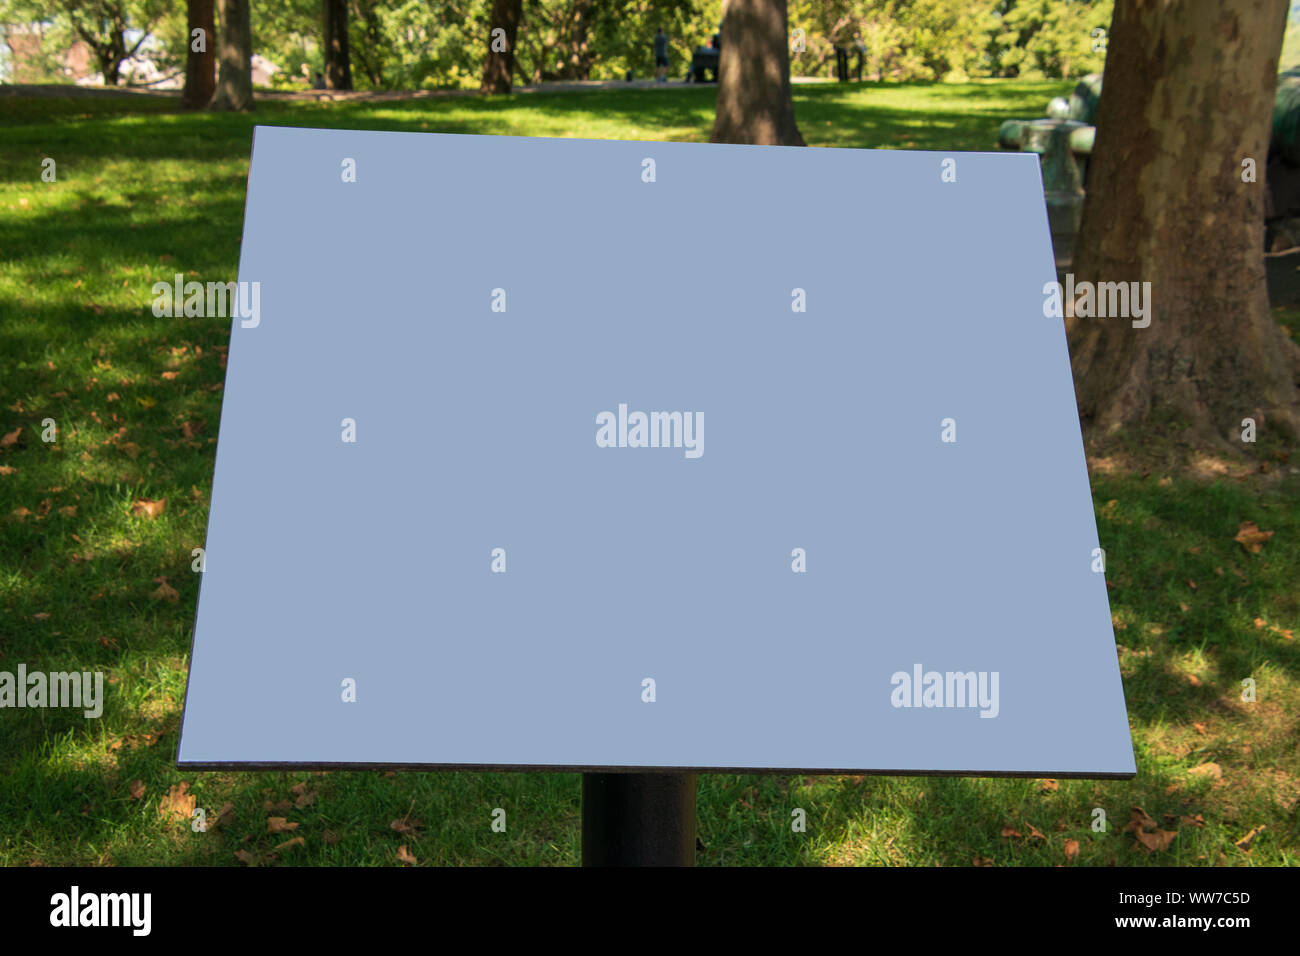 Blank blue sign on pedestal with a green grass and trees park like background Stock Photo